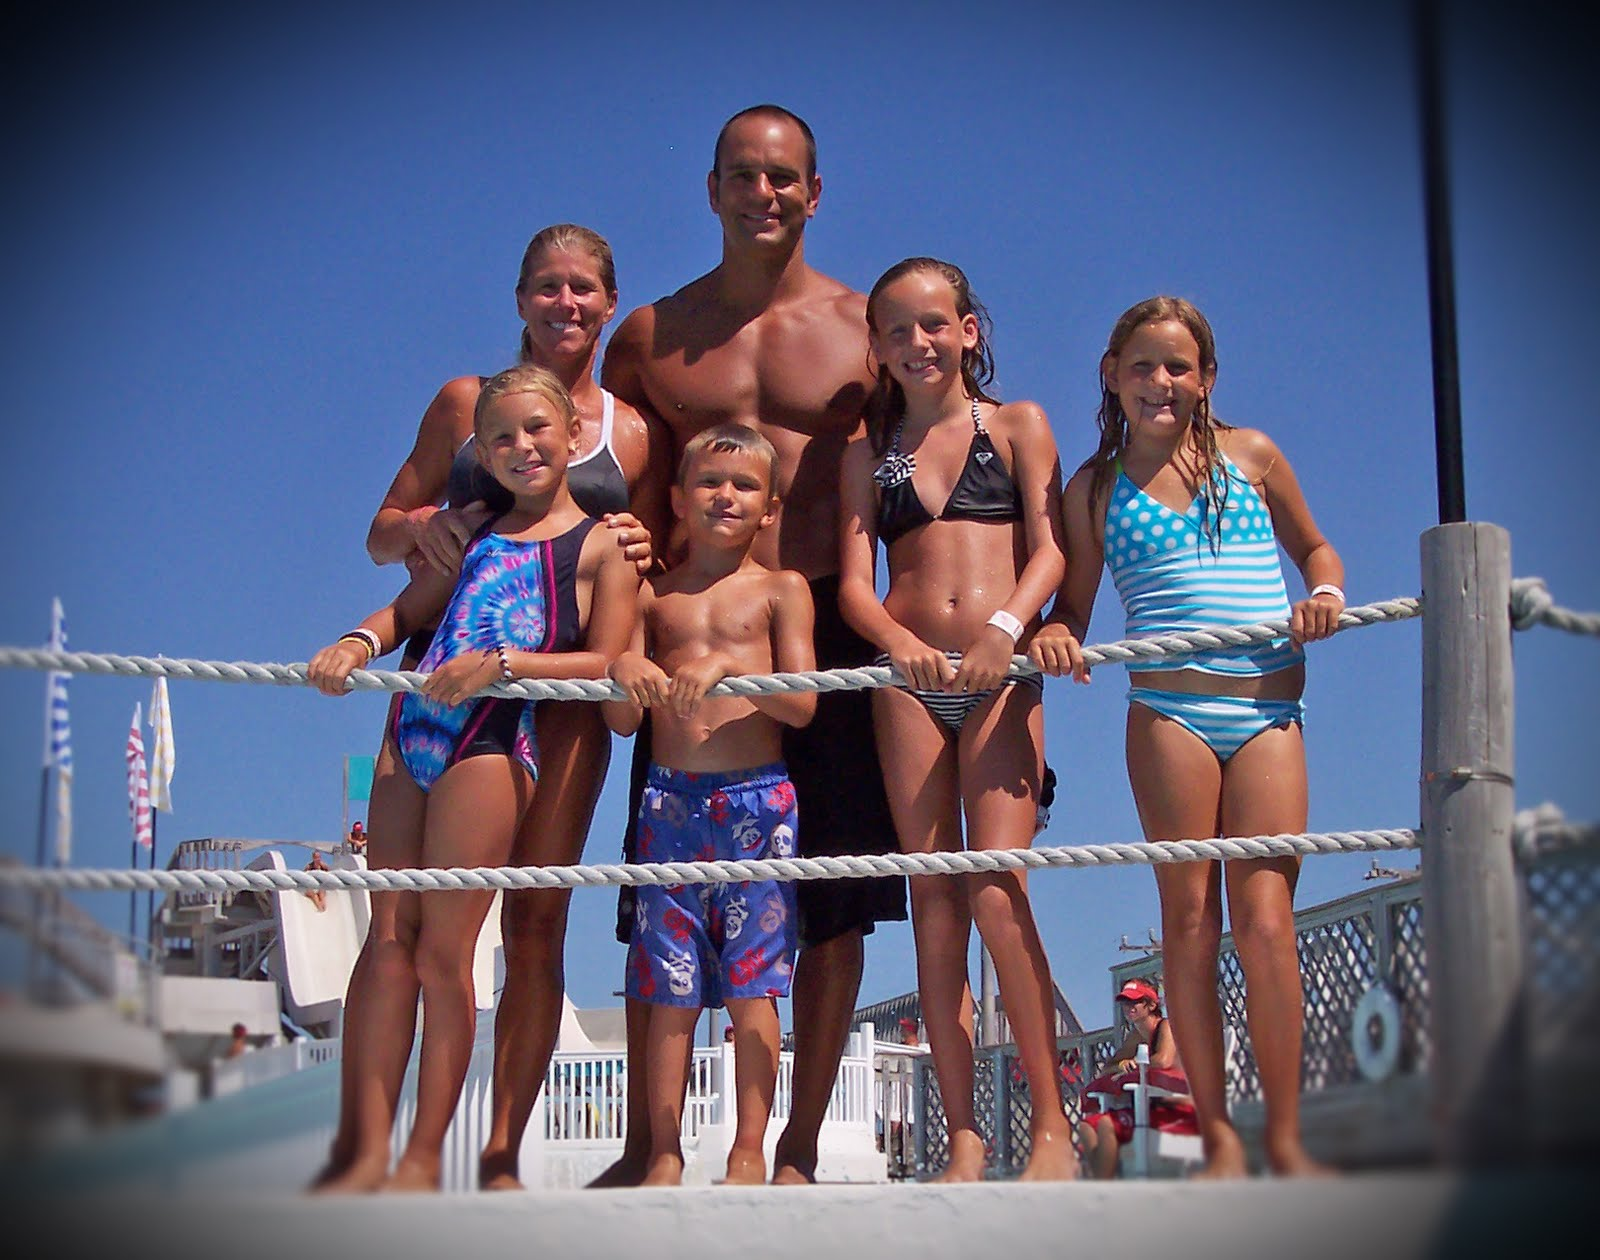 Mya's 9th Birthday at the Water Park